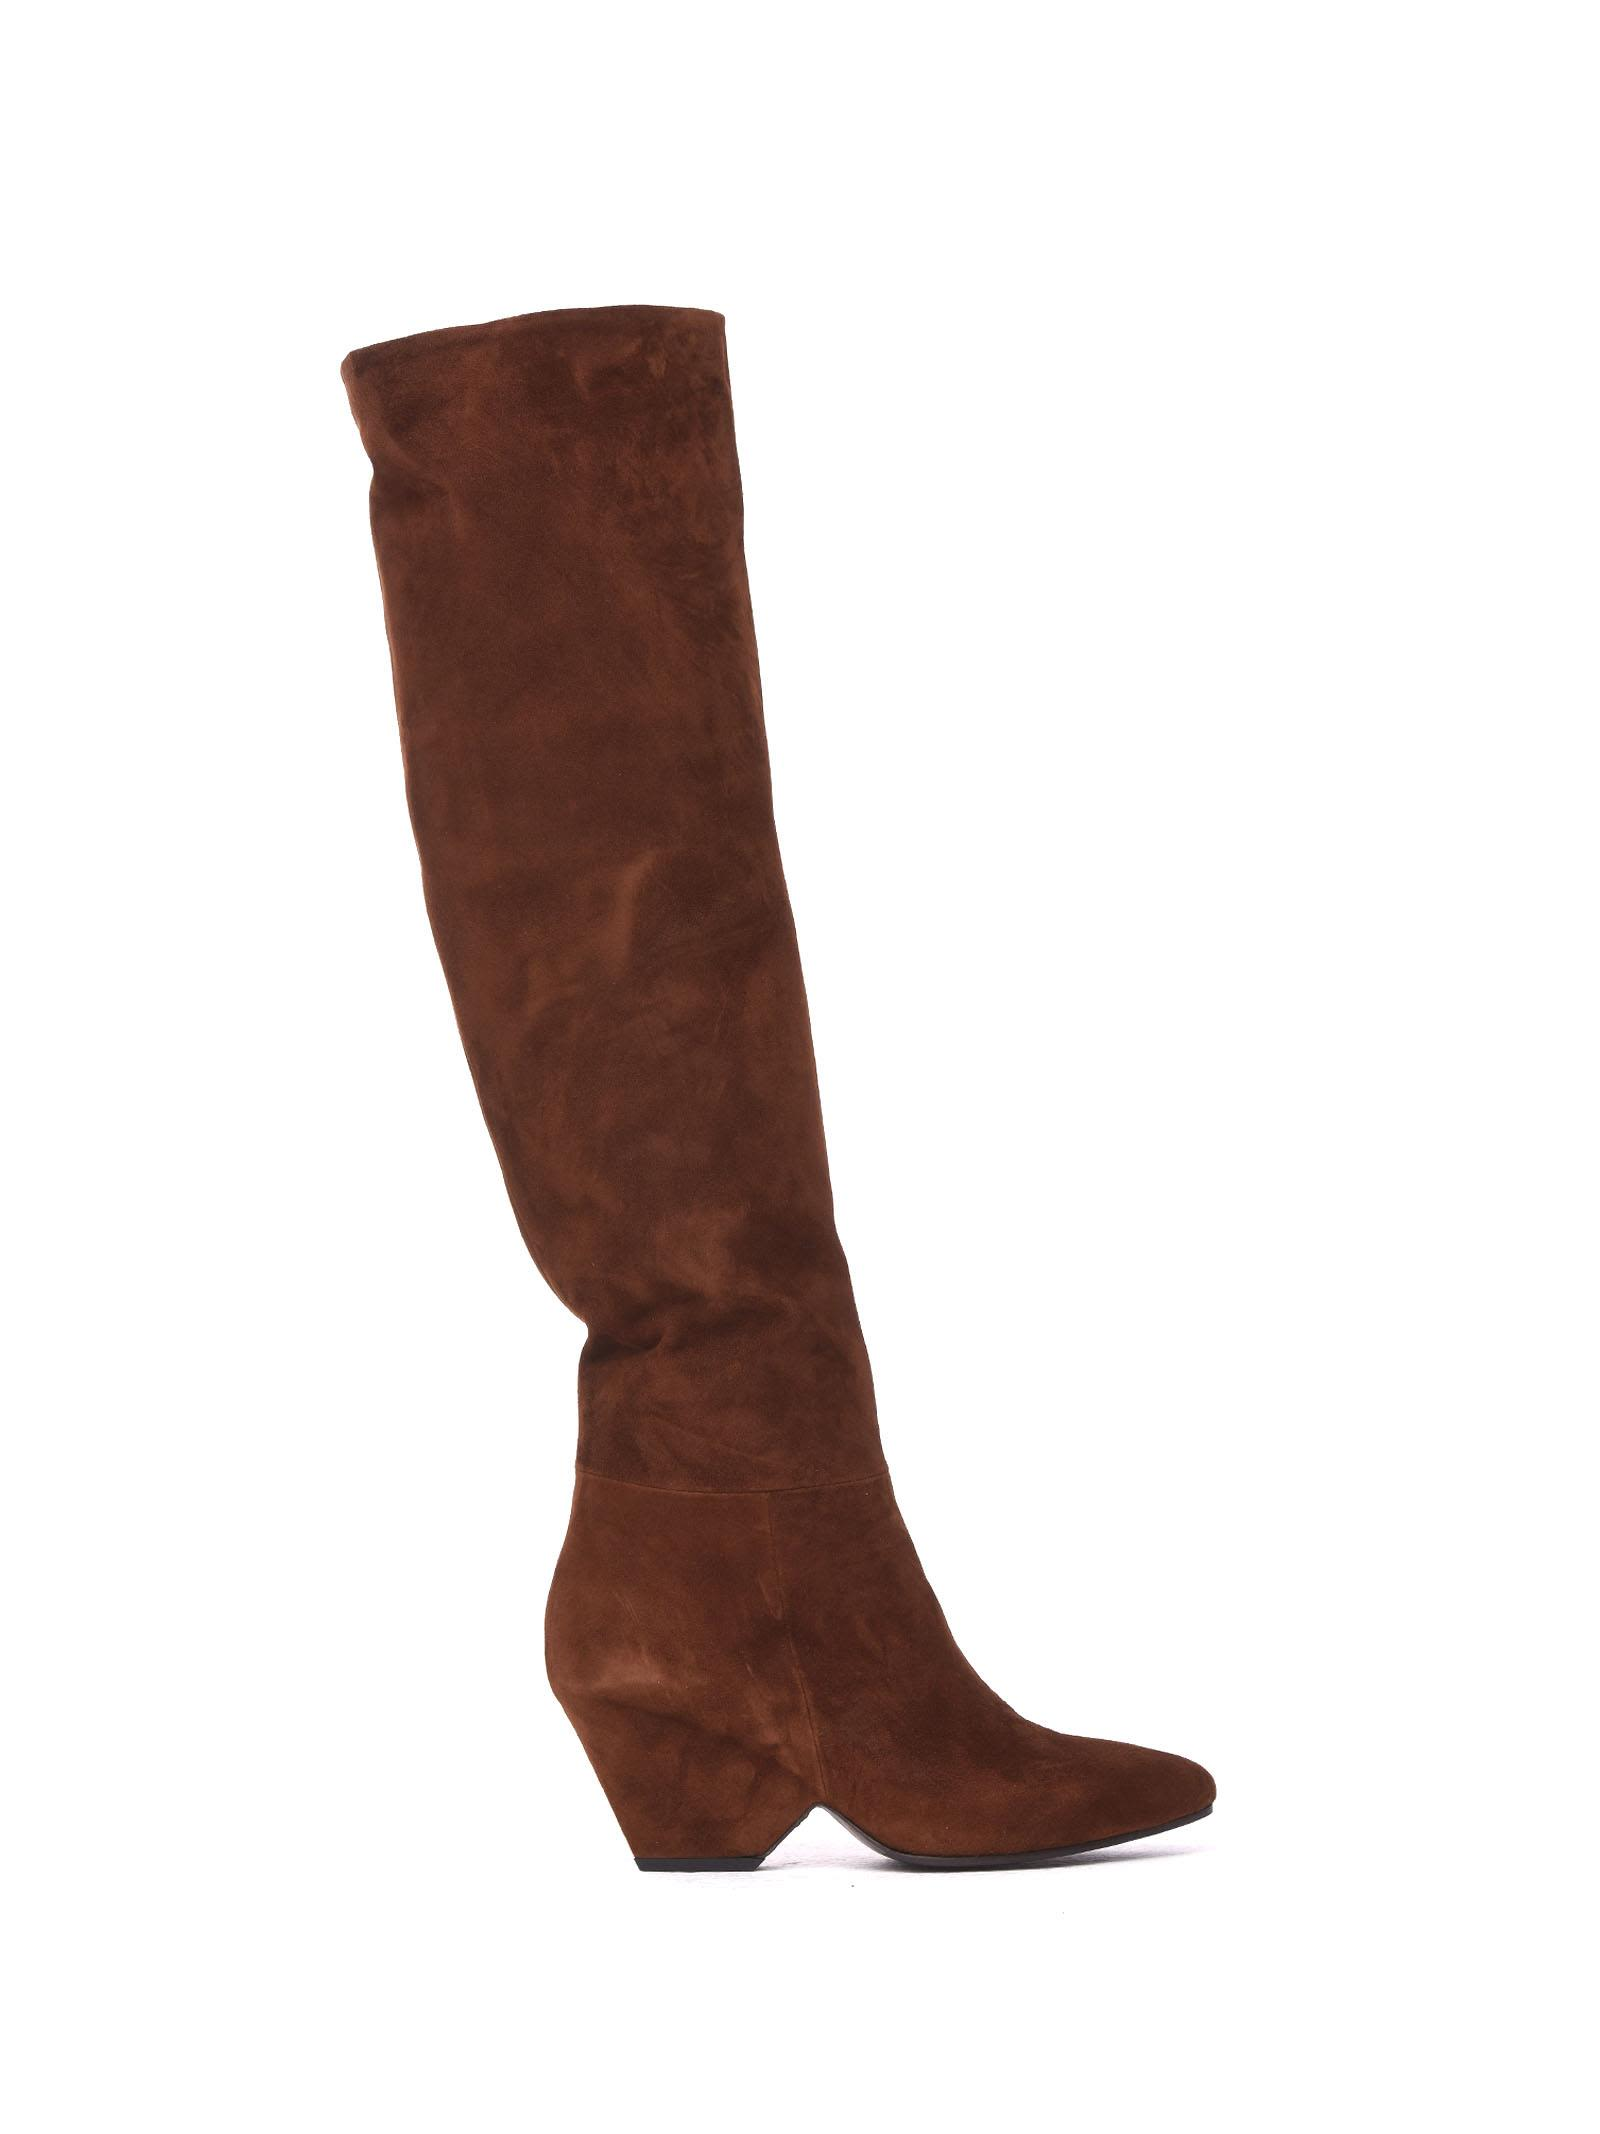 VIC MATIE Leather Stove Pipe Boots With Shell-Shaped Heel in Tobacco